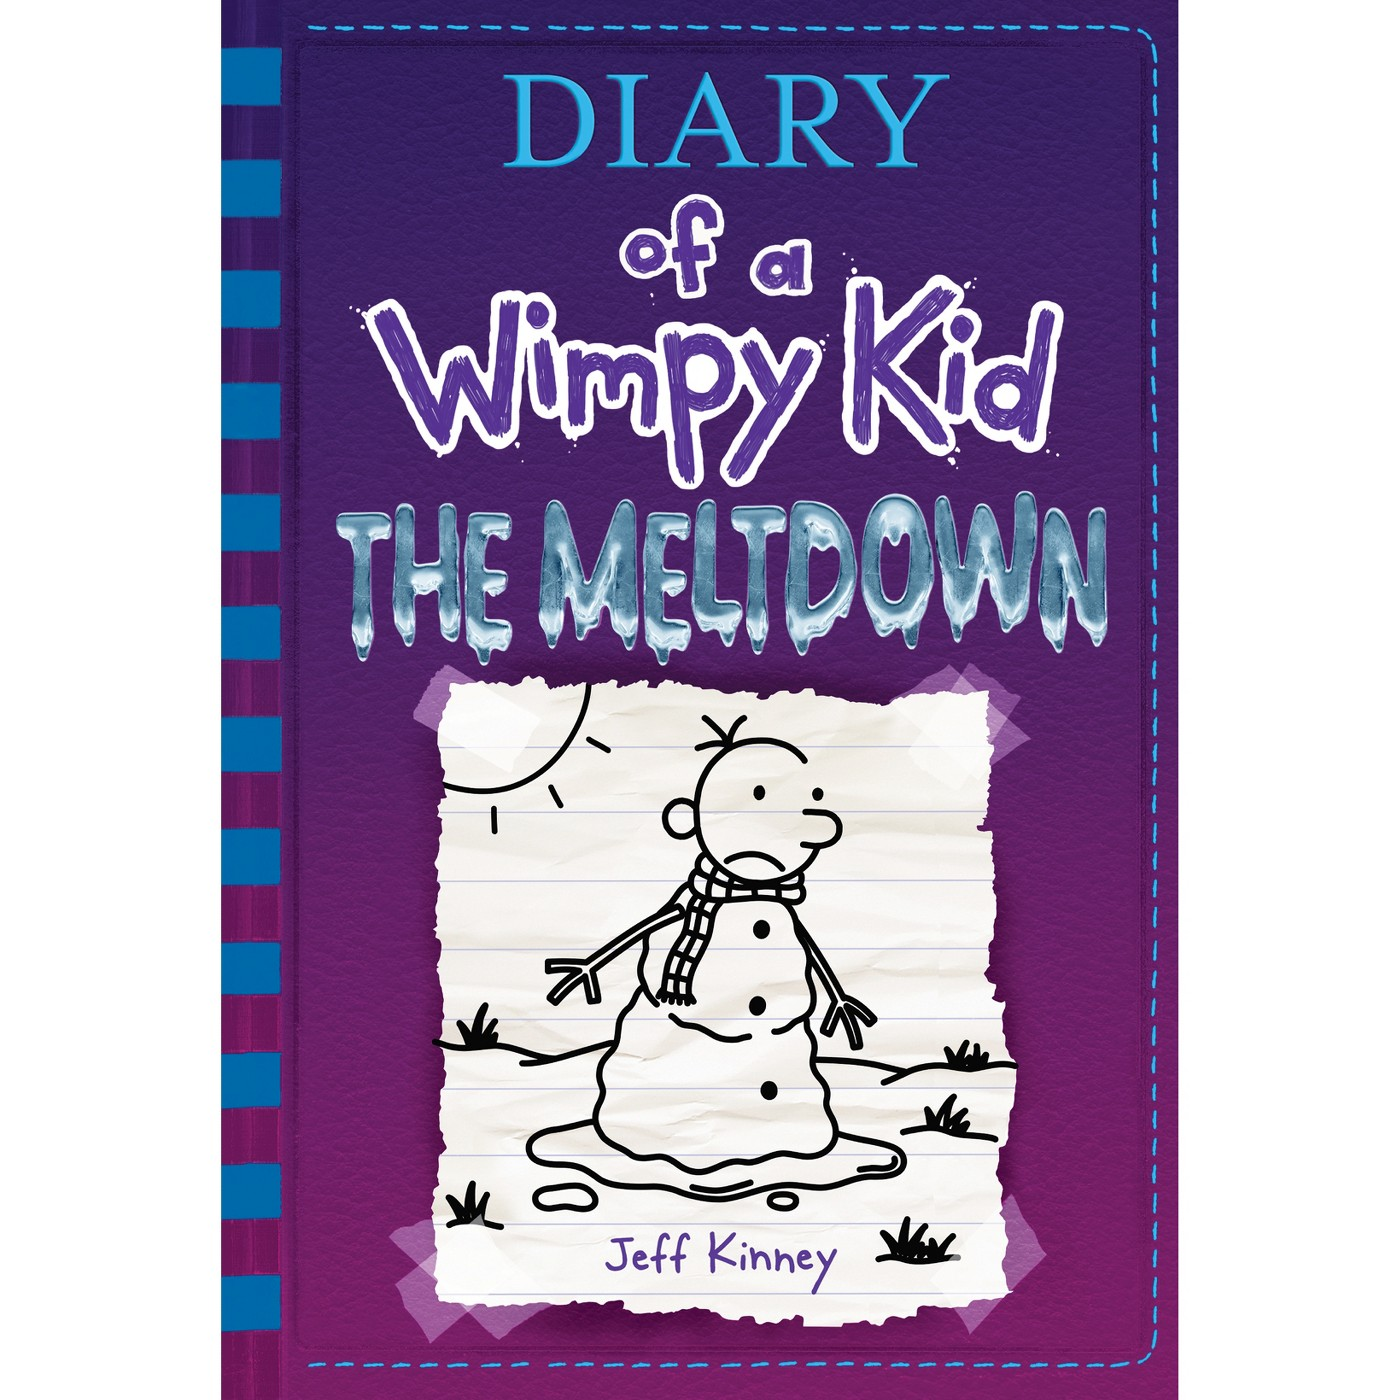 Meltdown -  (Diary of a Wimpy Kid) by Jeff Kinney (Hardcover) - image 1 of 1